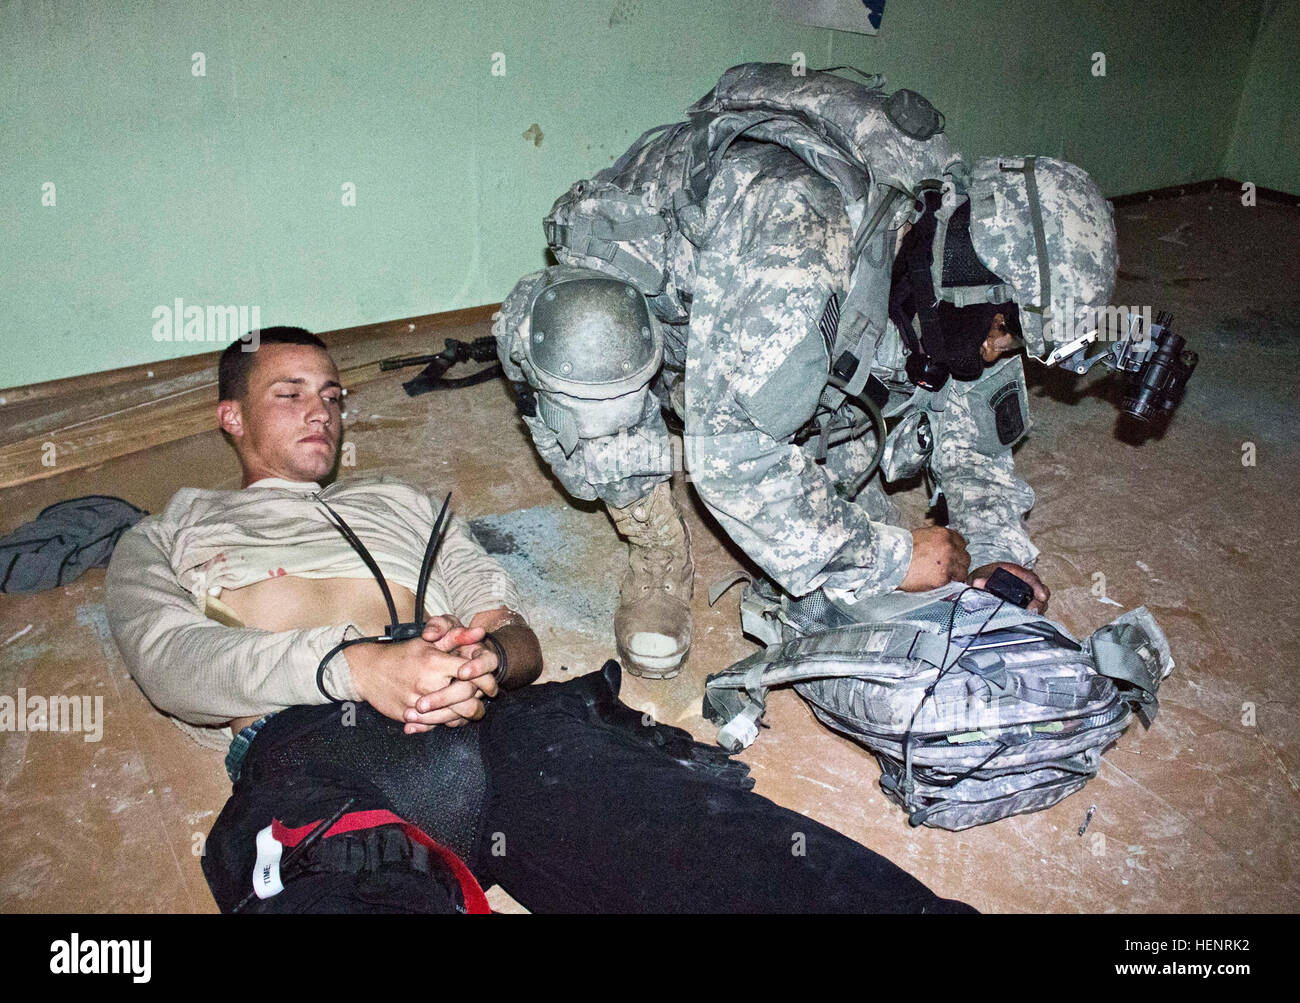 Army Pfc. Charles E. Jacobo, an Anaheim, California, native serving as a health care specialist in Company B, 2nd Battalion, 503rd Infantry Regiment, 173rd Airborne Brigade applies first aid to a Soldier role-playing as a wounded insurgent during a night raid training mission held Sept. 6 at an abandoned Soviet era prison in Rummu, Estonia. The raid was part of Steadfast Javelin II, a NATO exercise involving more than 2,000 troops from nine nations conducting various training missions across Estonia, Germany, Latvia, Lithuania and Poland. The exercise focuses on increasing interoperability and Stock Photo